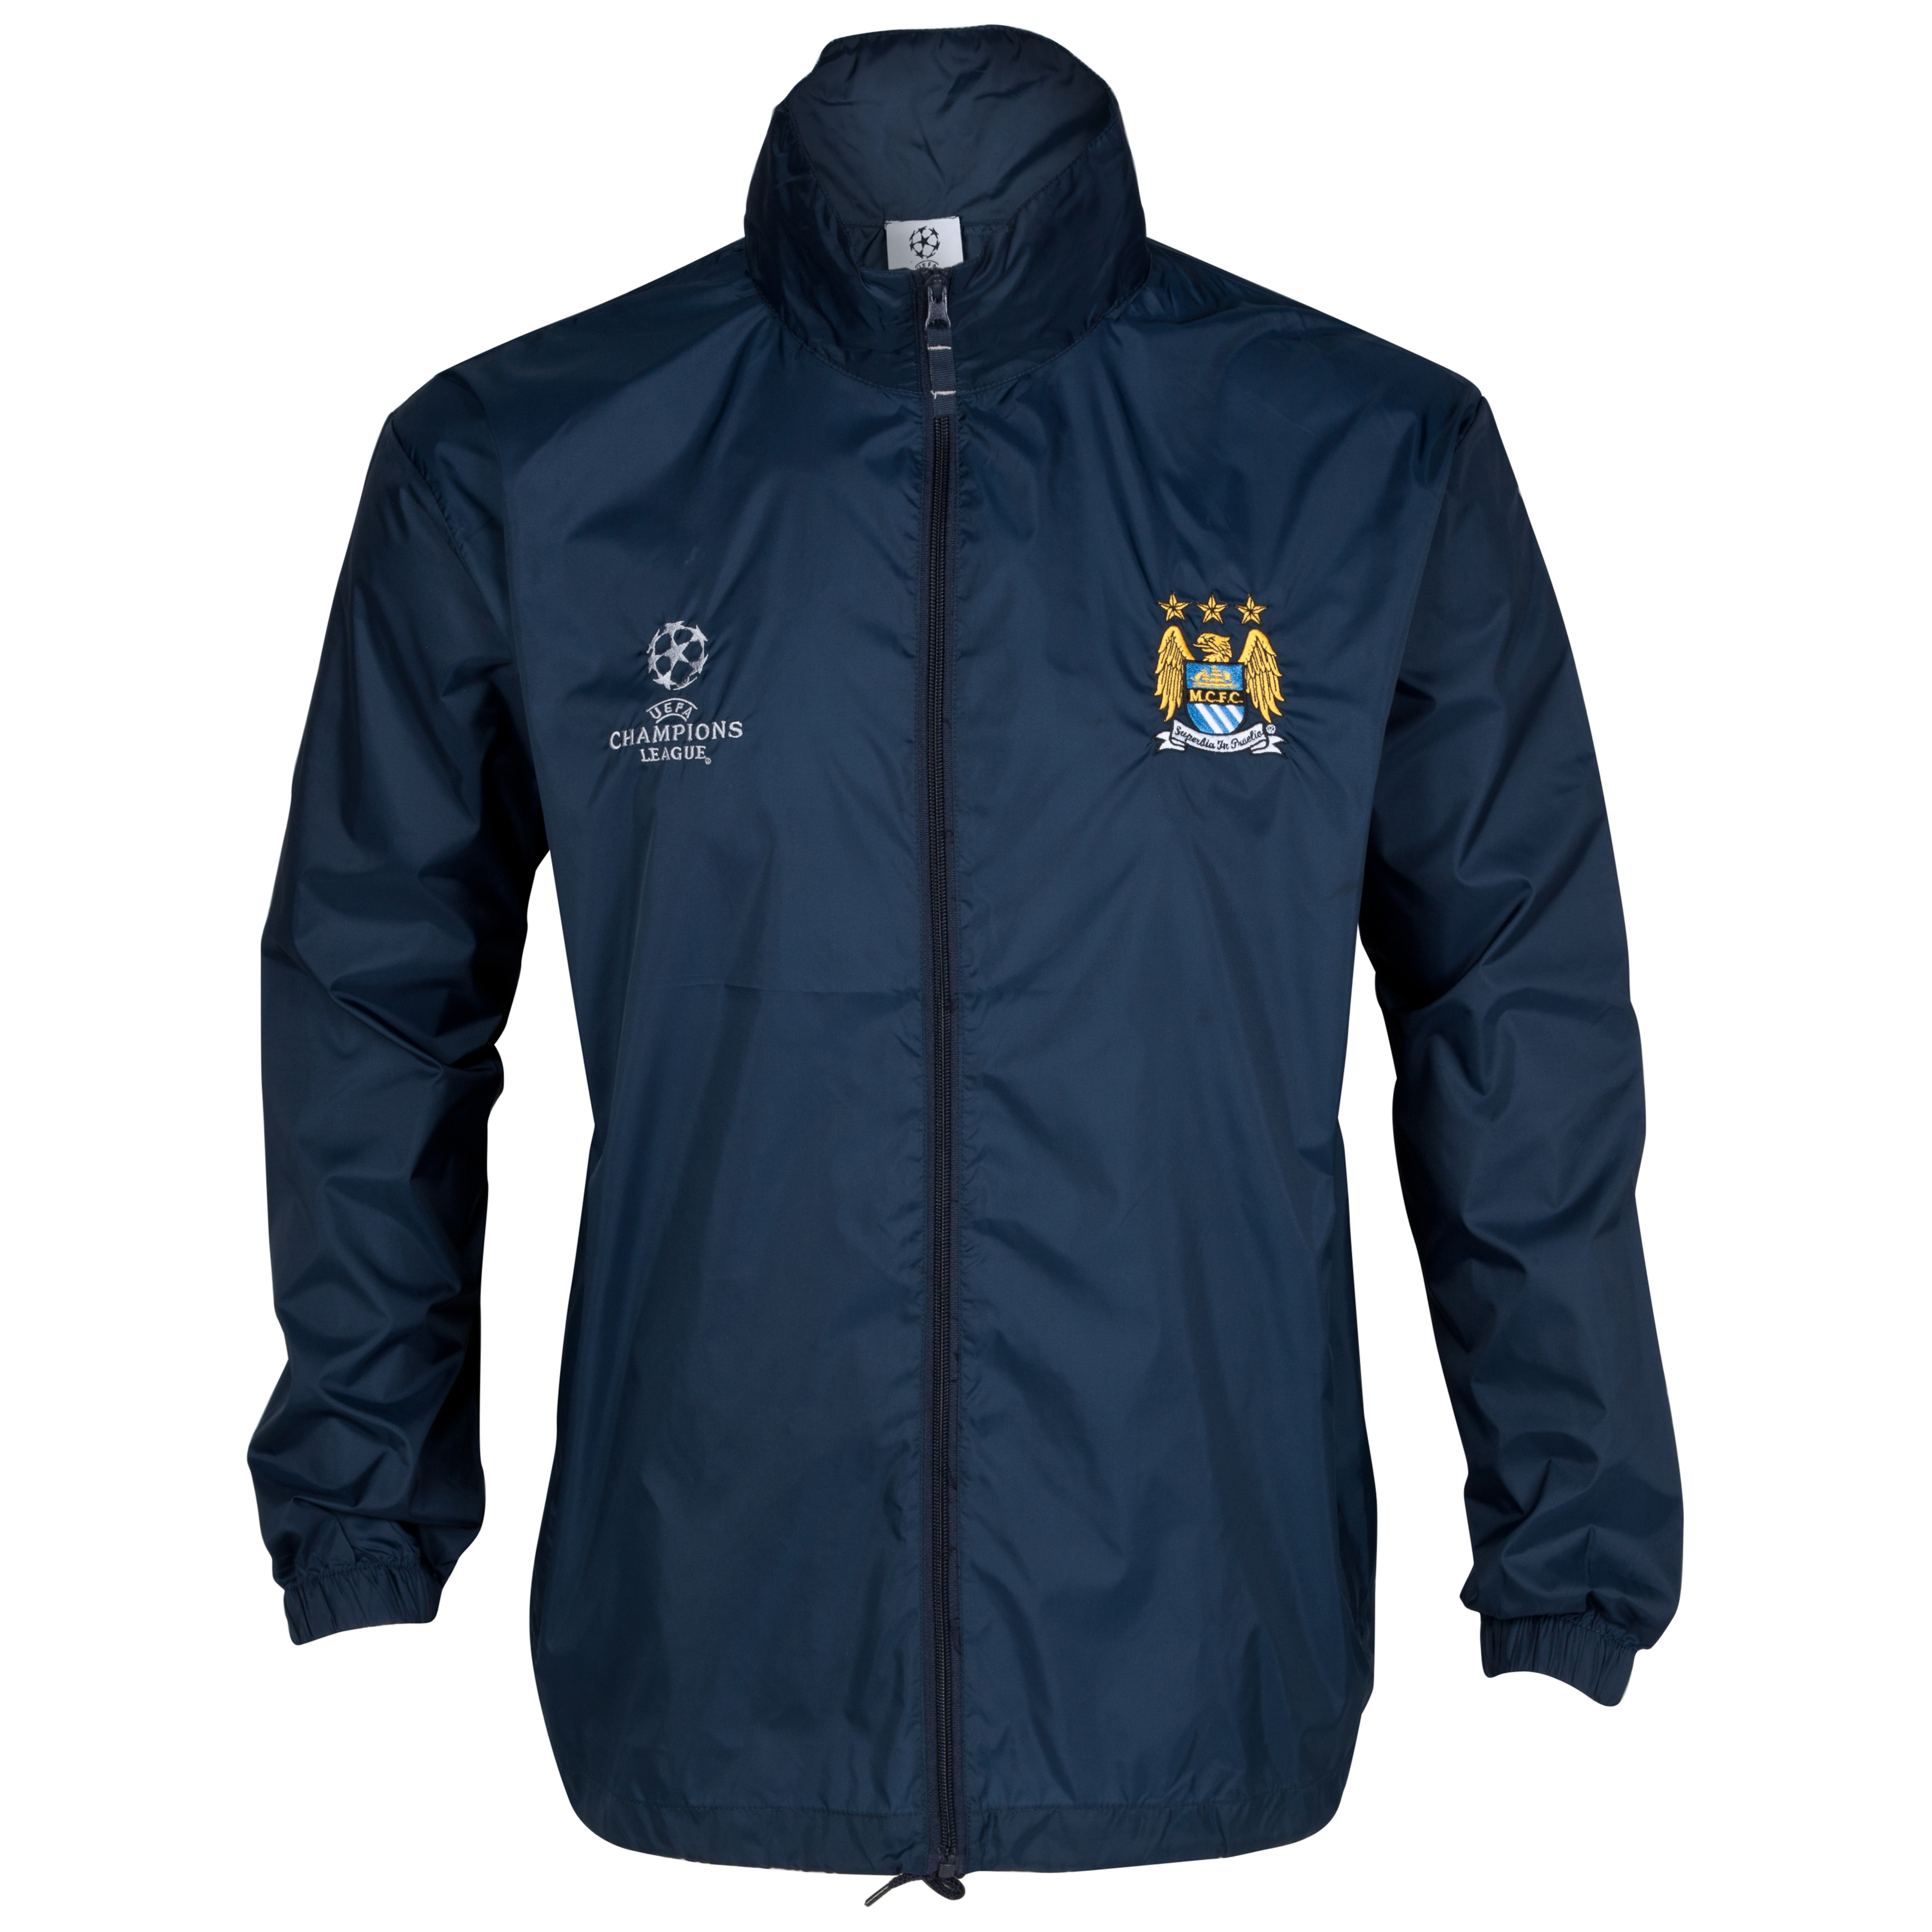 Manchester City UEFA Champions League Embroidered Windbreaker - Navy